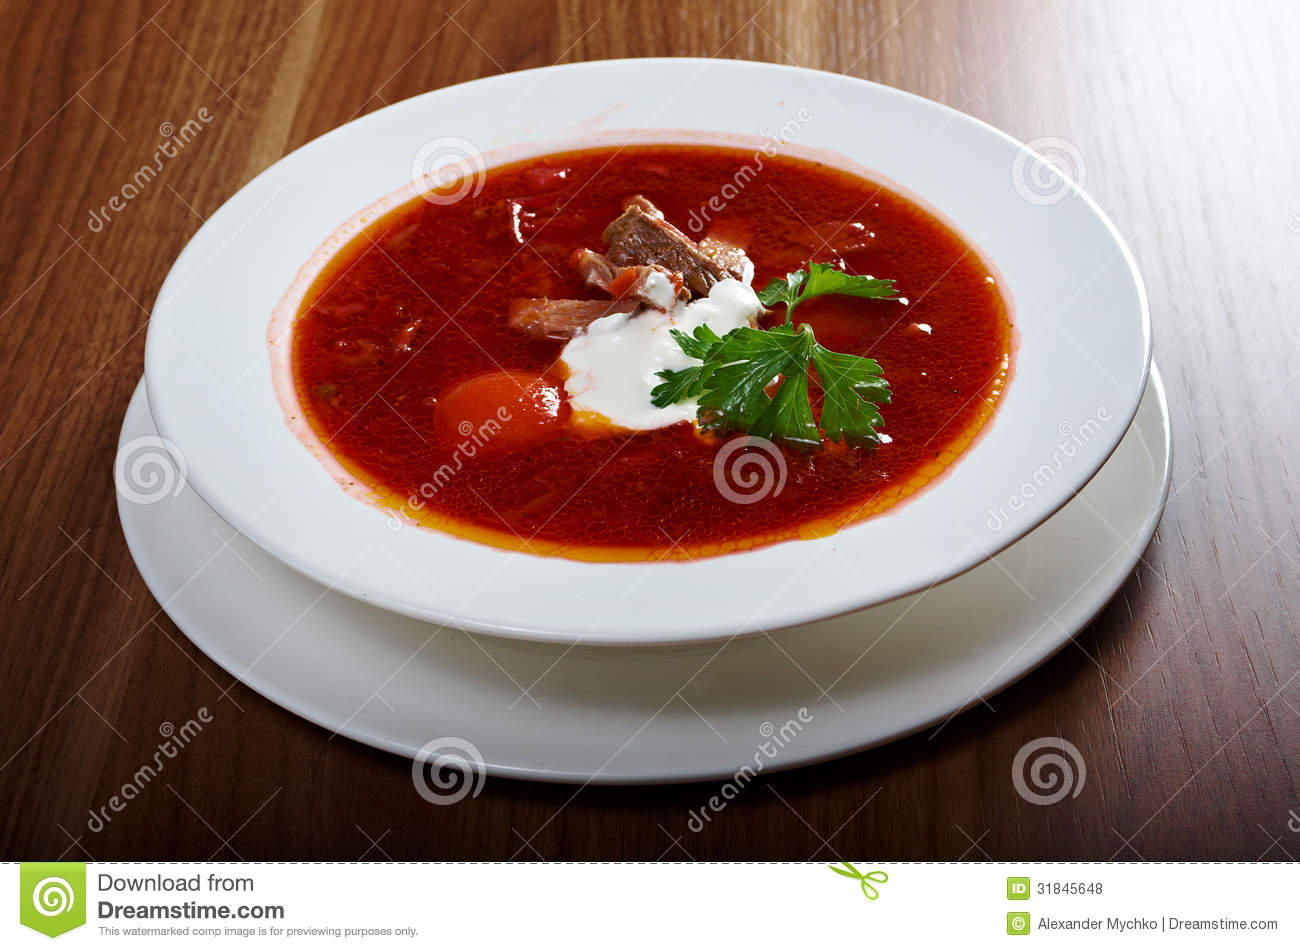 Ukrainian And Russian Red-beet Soup (borscht) Royalty Free ...